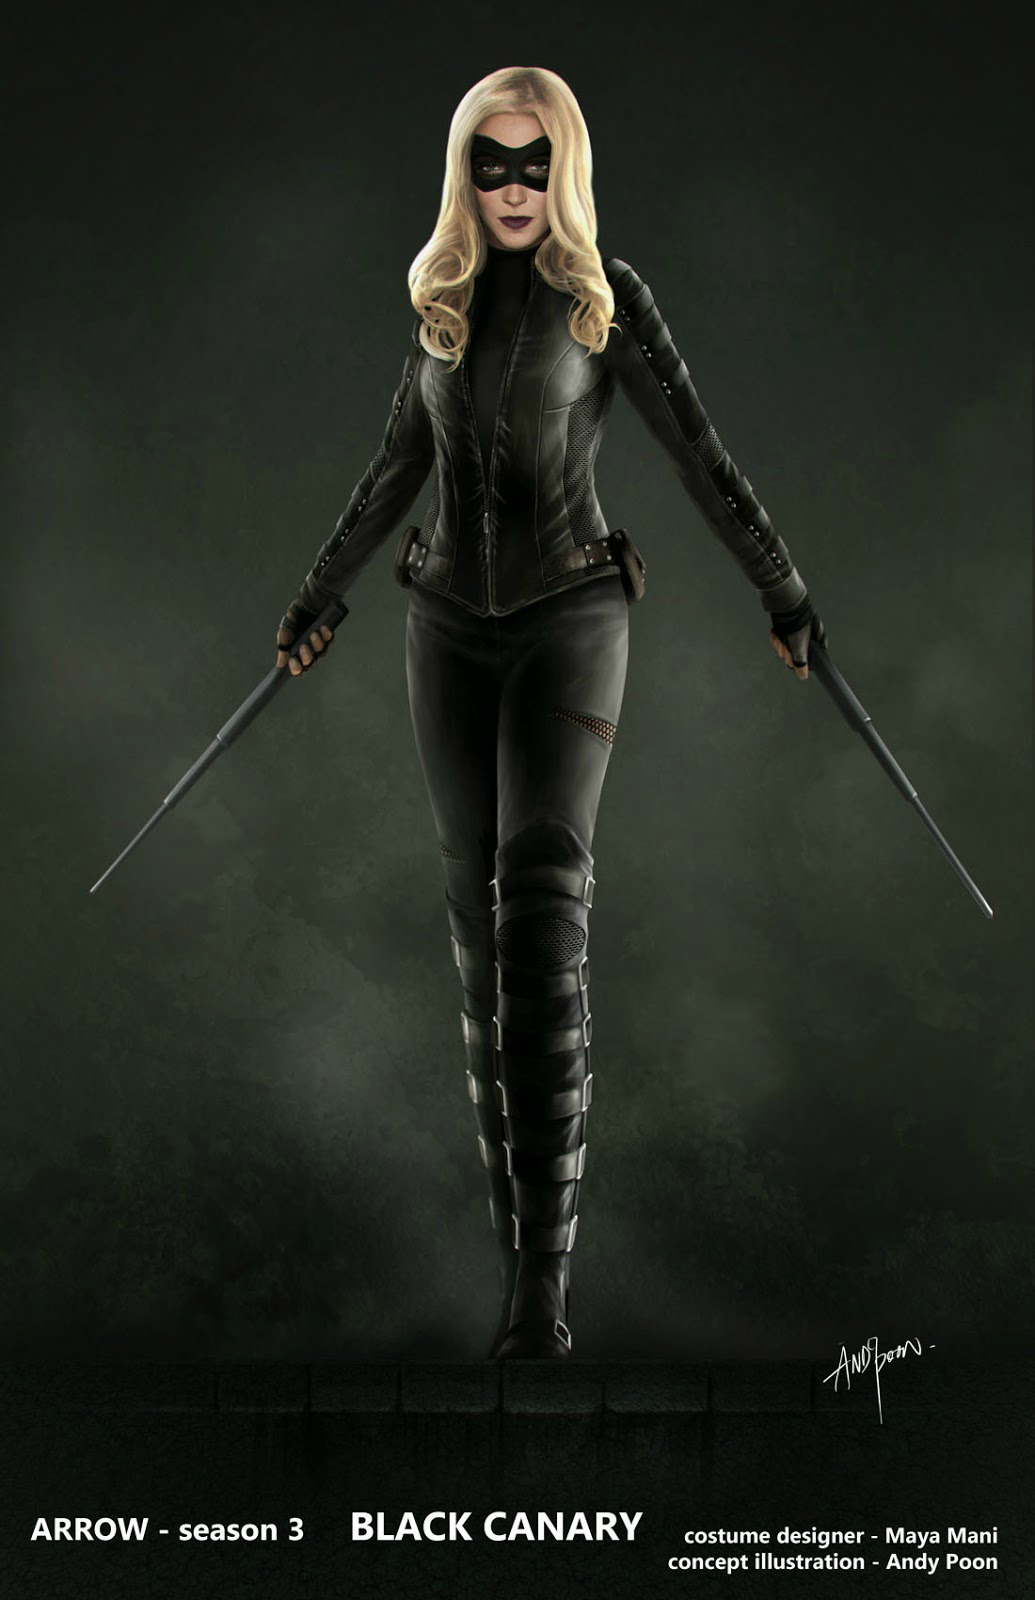 Black_Canary_concept_artwork.png